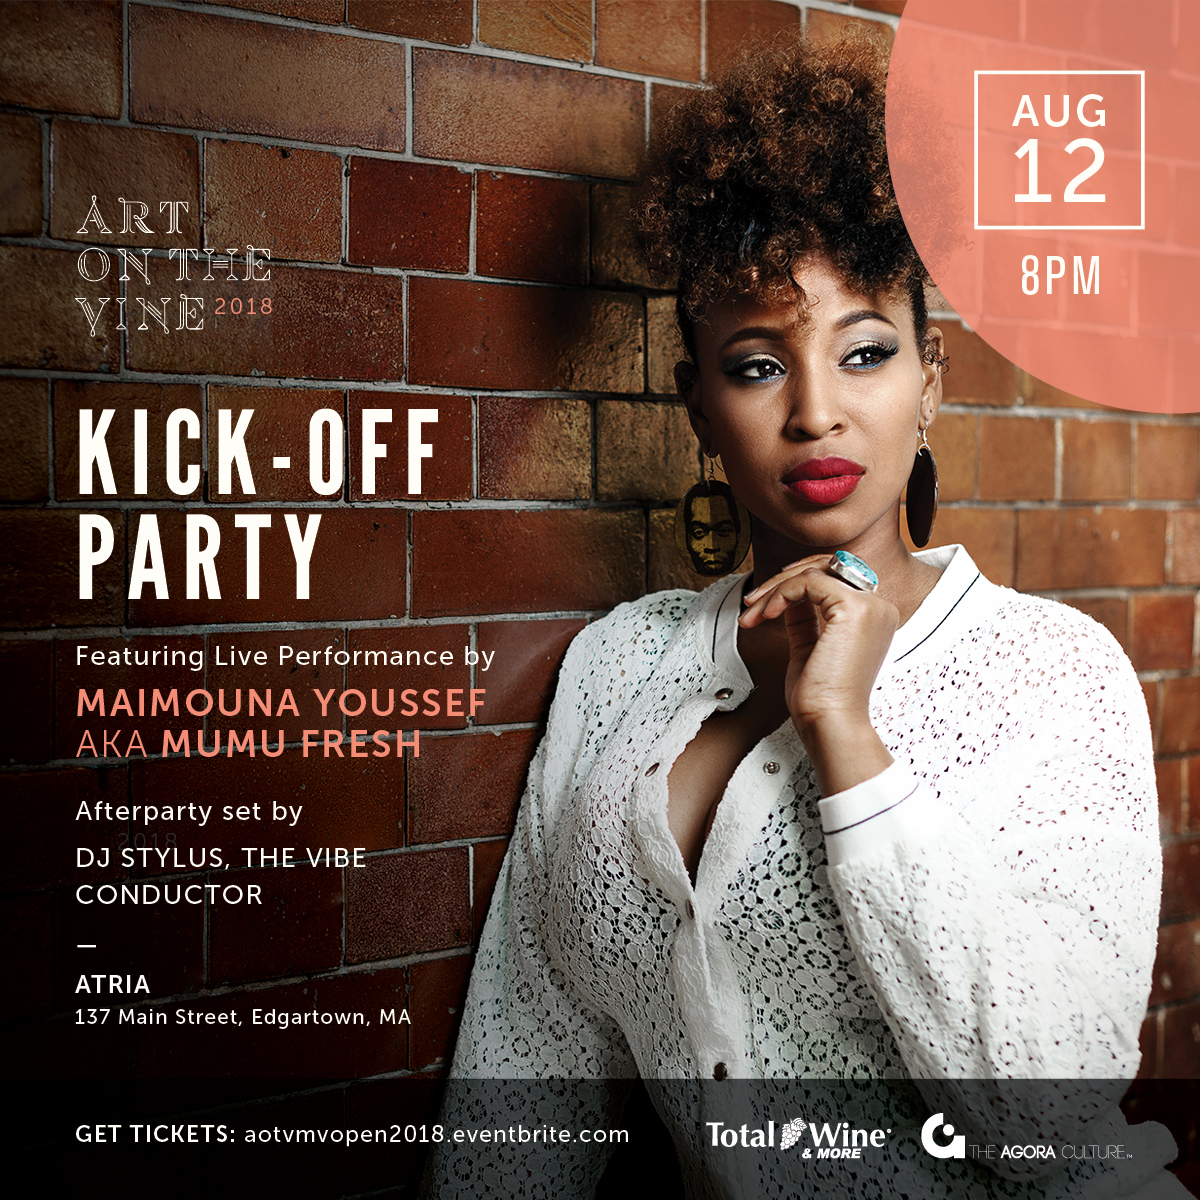 AOTV Martha's Vineyard Kick-Off Party featuring Mumu Fresh & DJ Stylus, Sun. 8/12